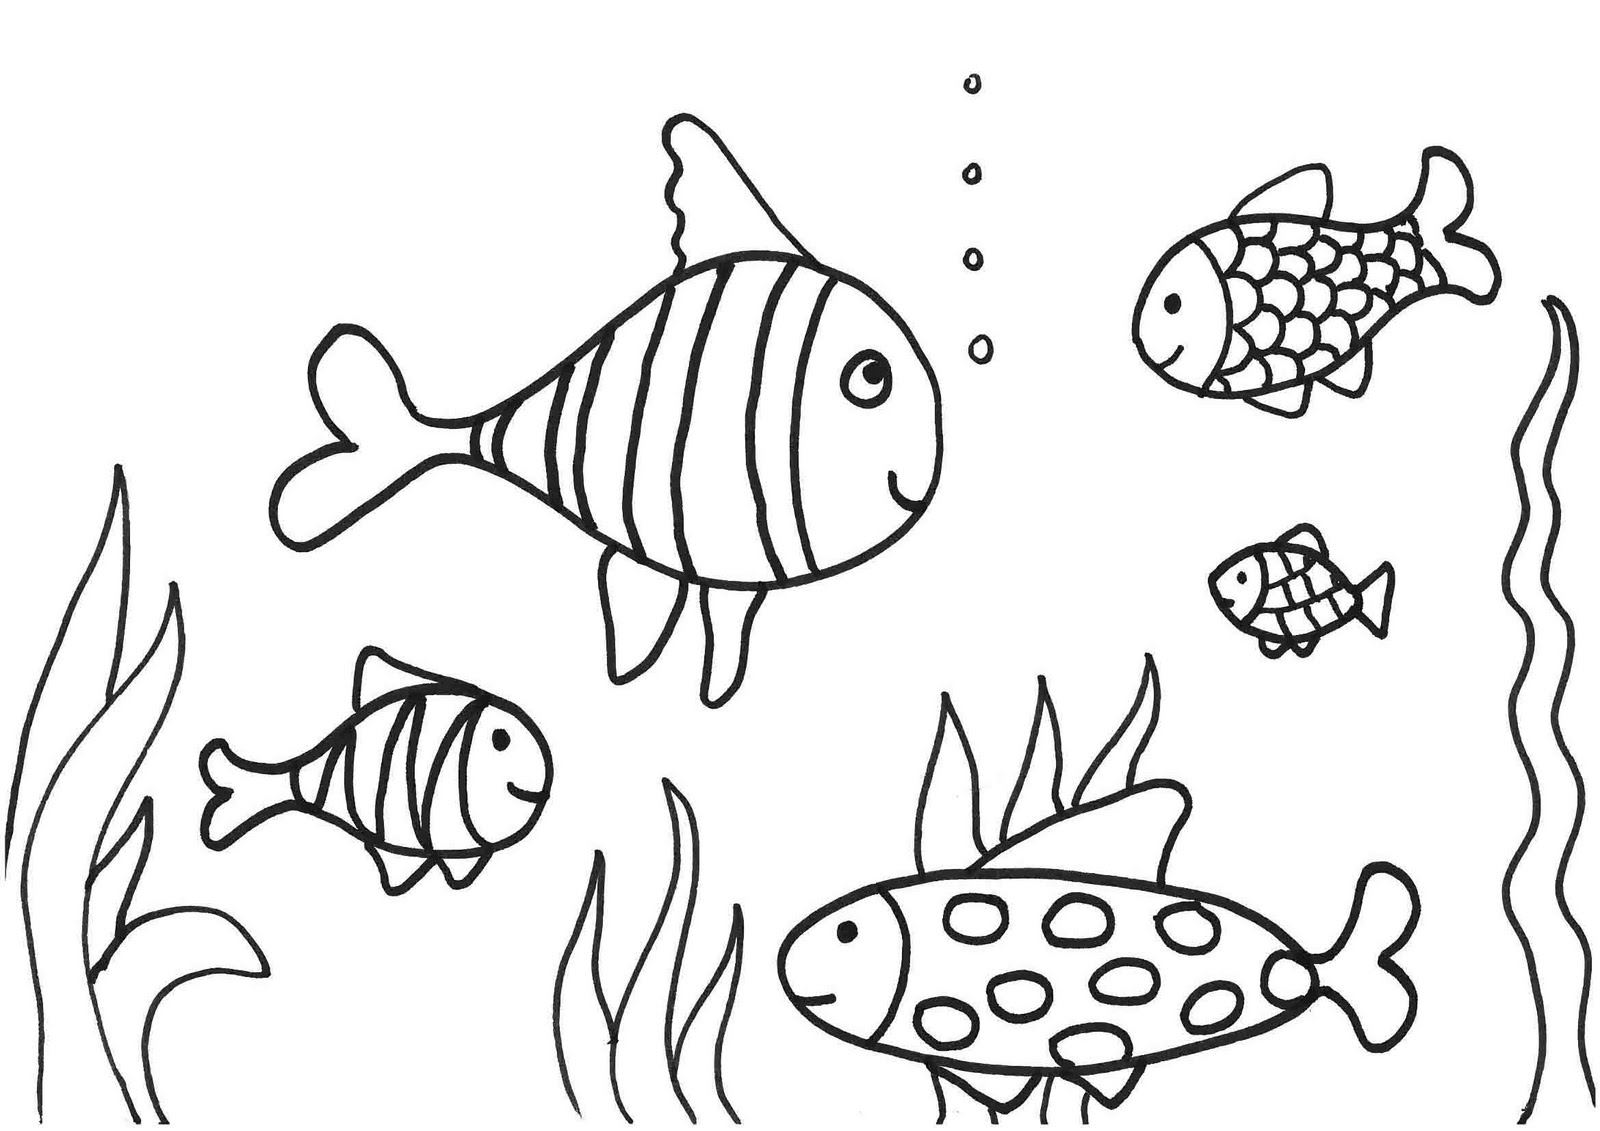 easy fish coloring pages fish coloring pages to printcoloringfree download coloring pages fish easy